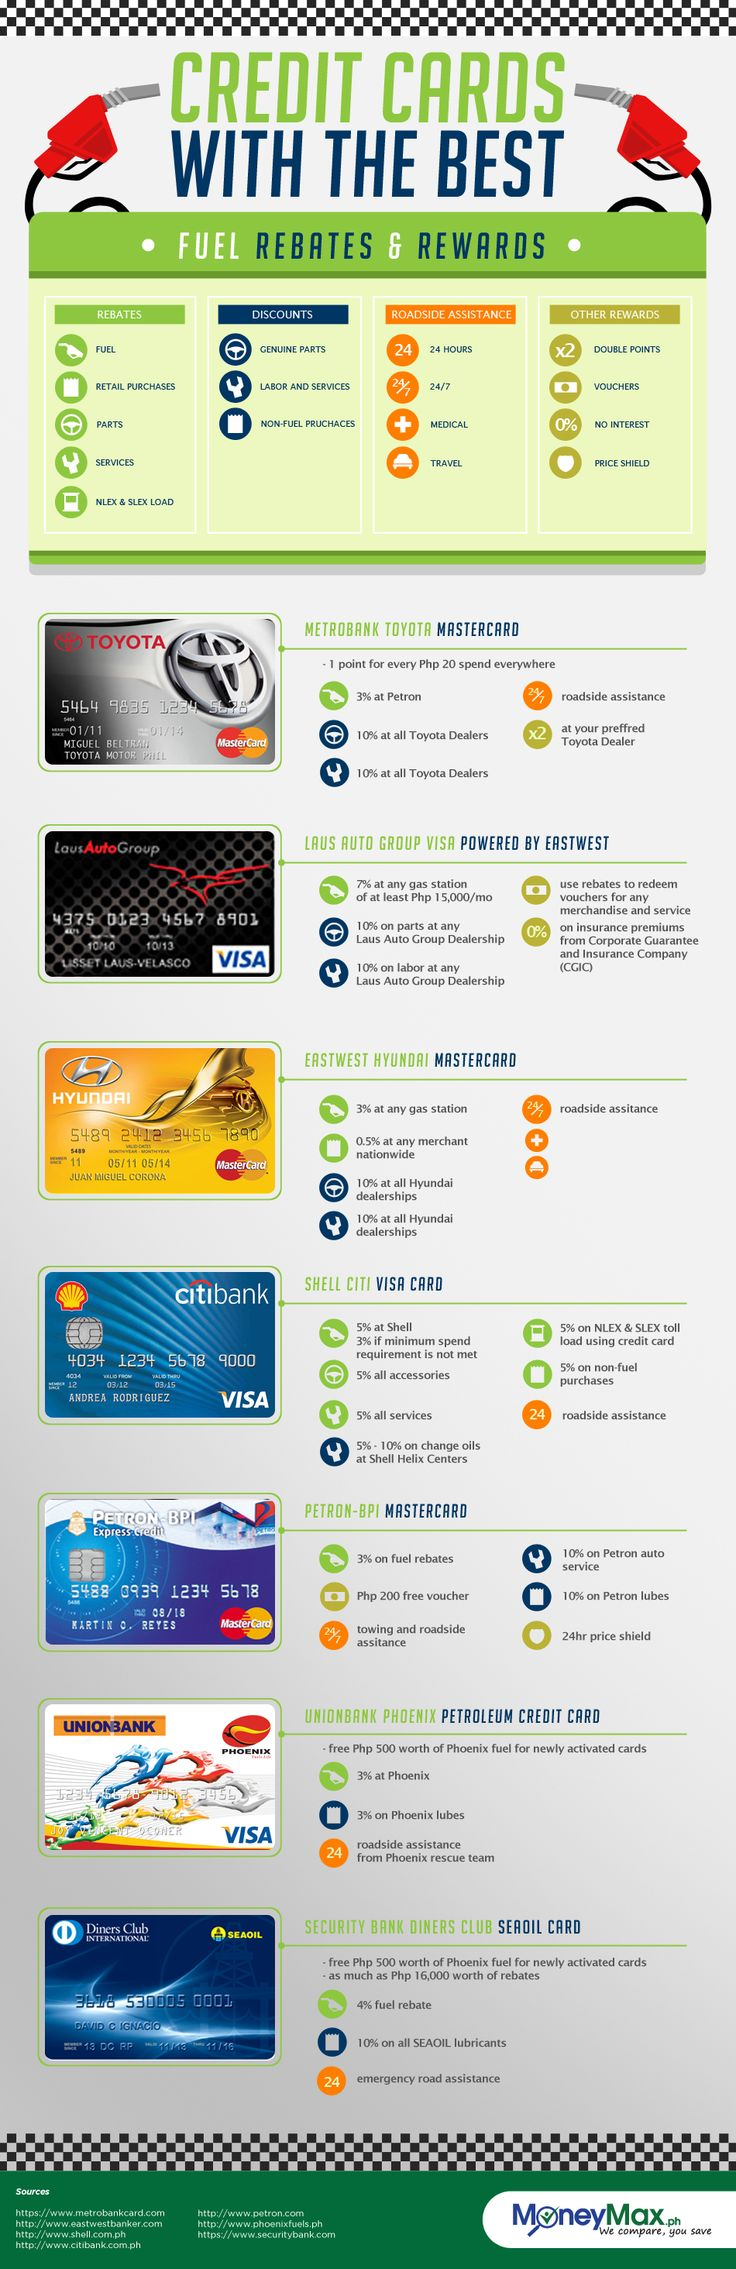 credit cards comparison uae